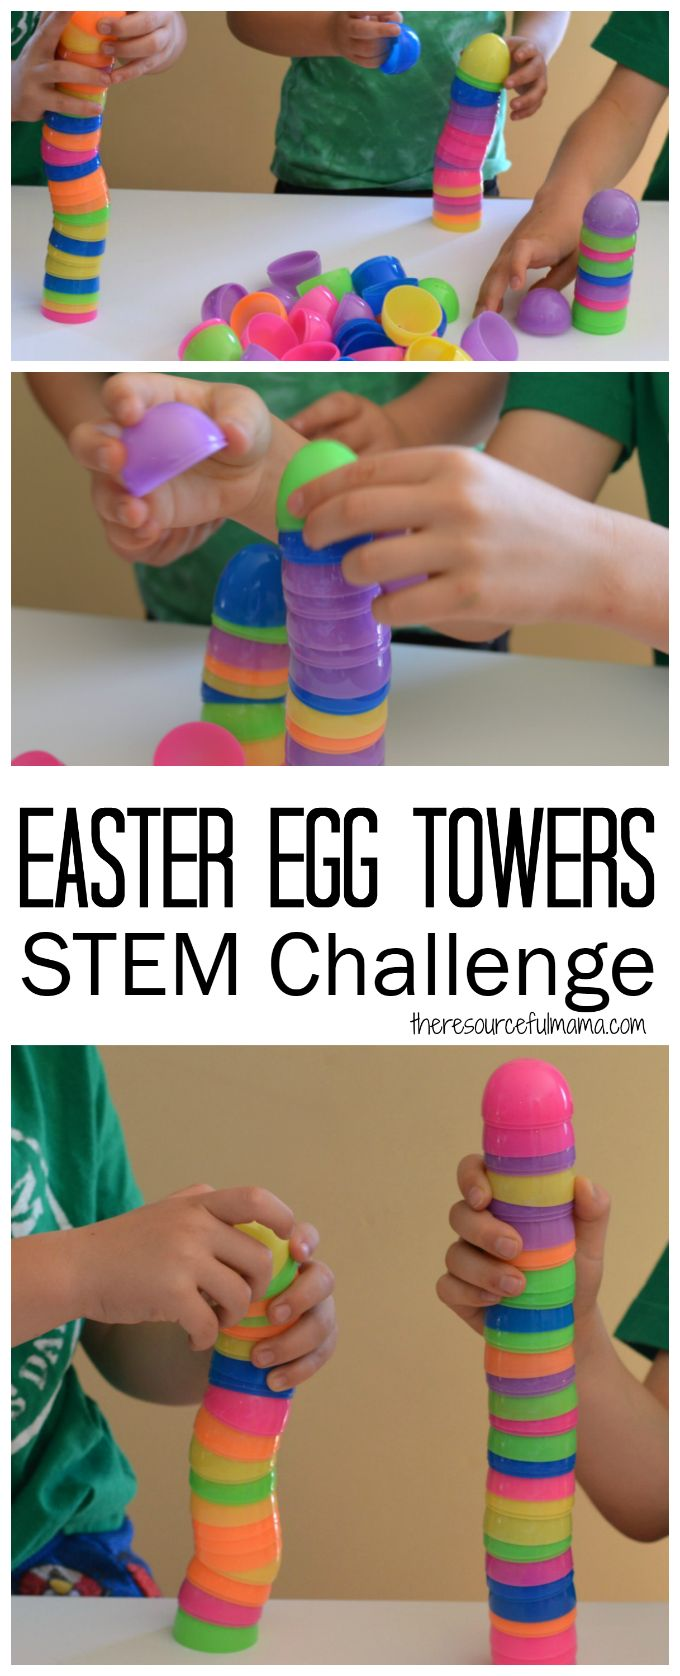 Challenge kids to an Easter egg tower STEM challenge using plastic Easter eggs.